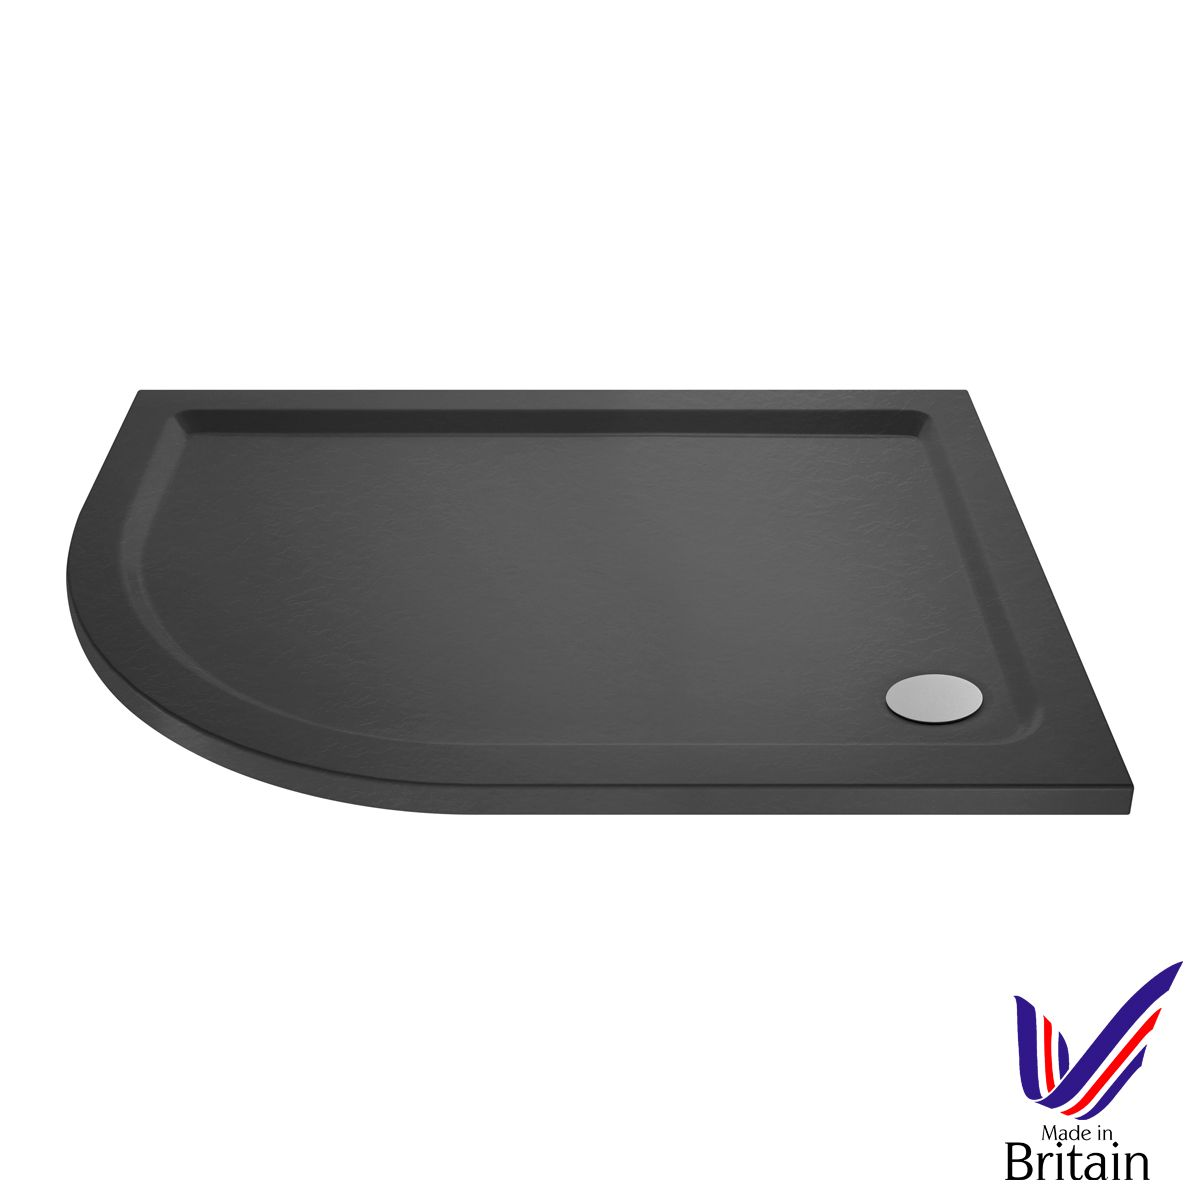 1200 x 800 Shower Tray Slate Grey Offset Quadrant Low Profile Left Hand by Pearlstone